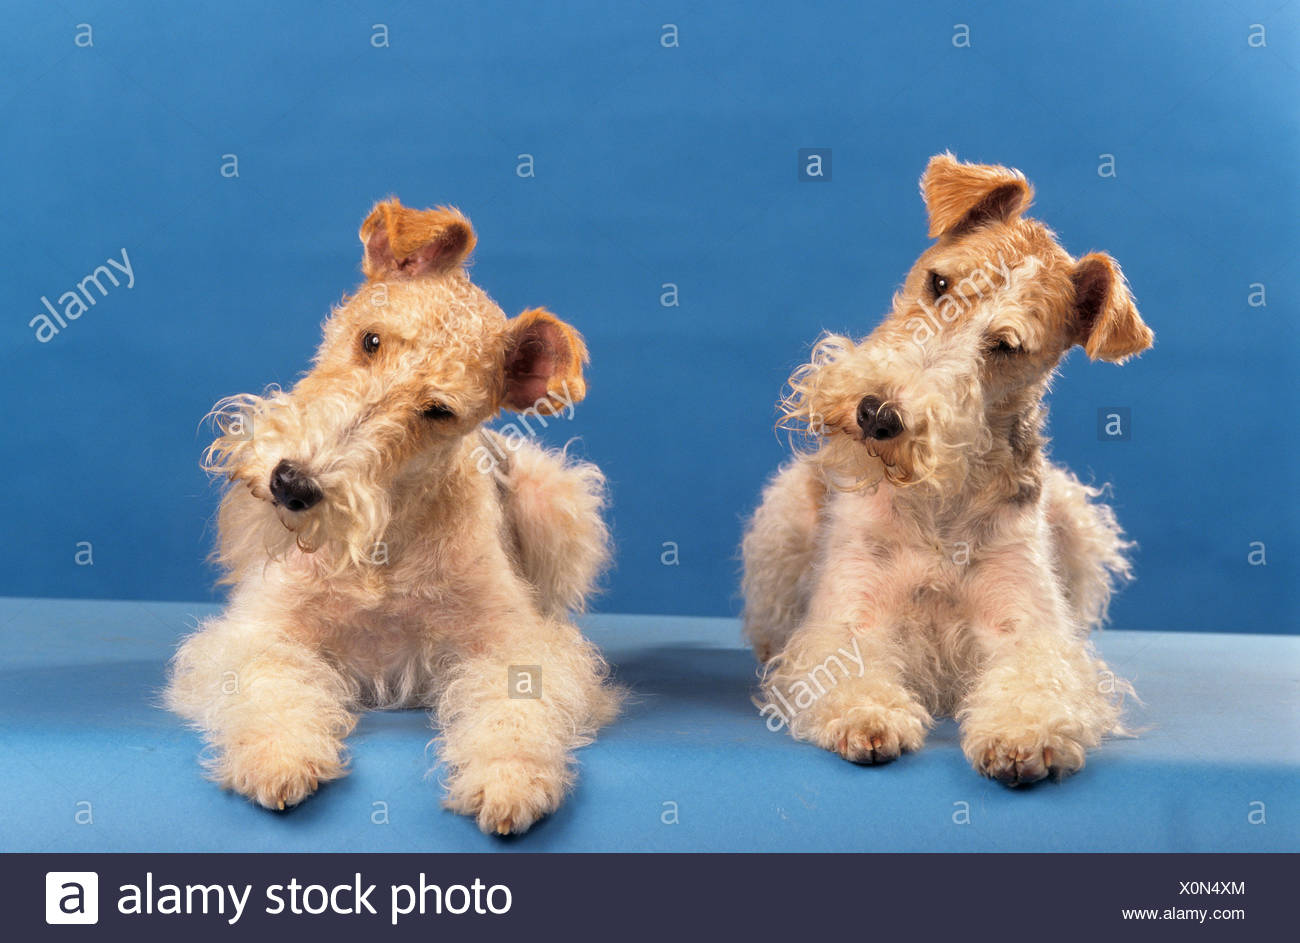 two Wirehaired Fox Terrier dogs - lying Stock Photo: 275830764 - Alamy